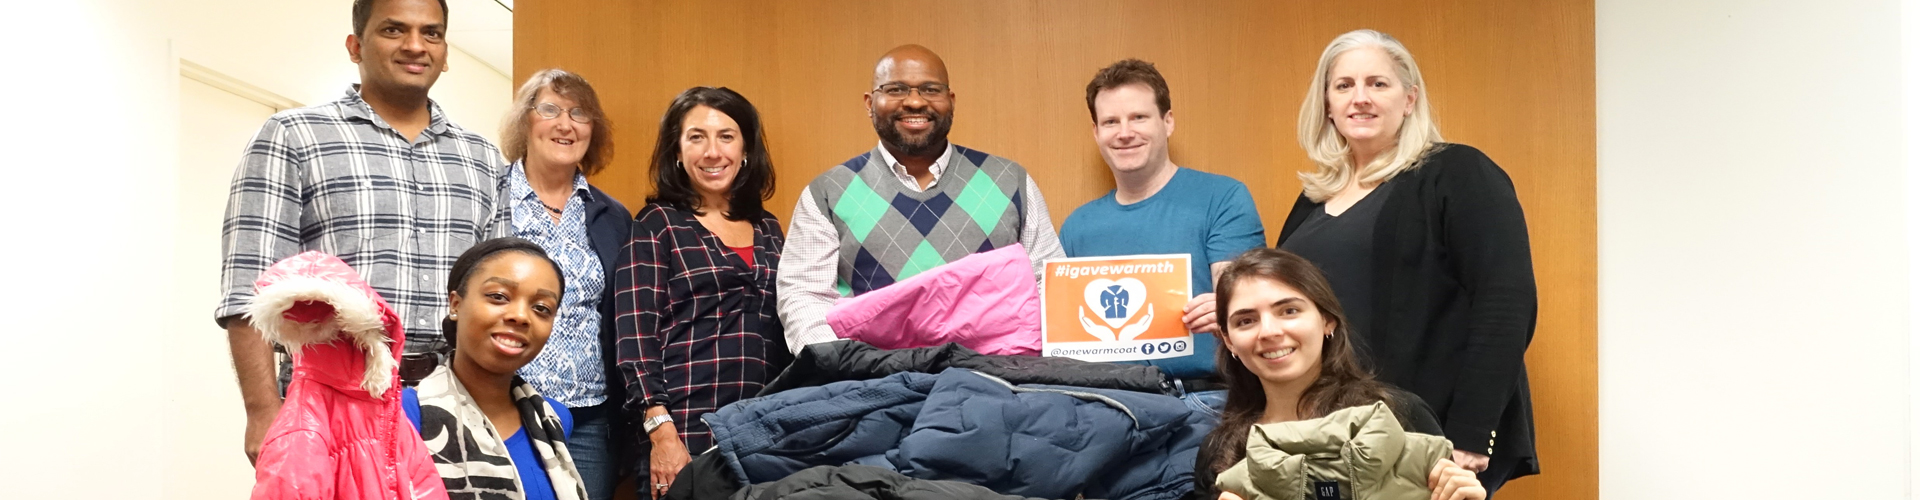 Hitachi Supports for Families in Need